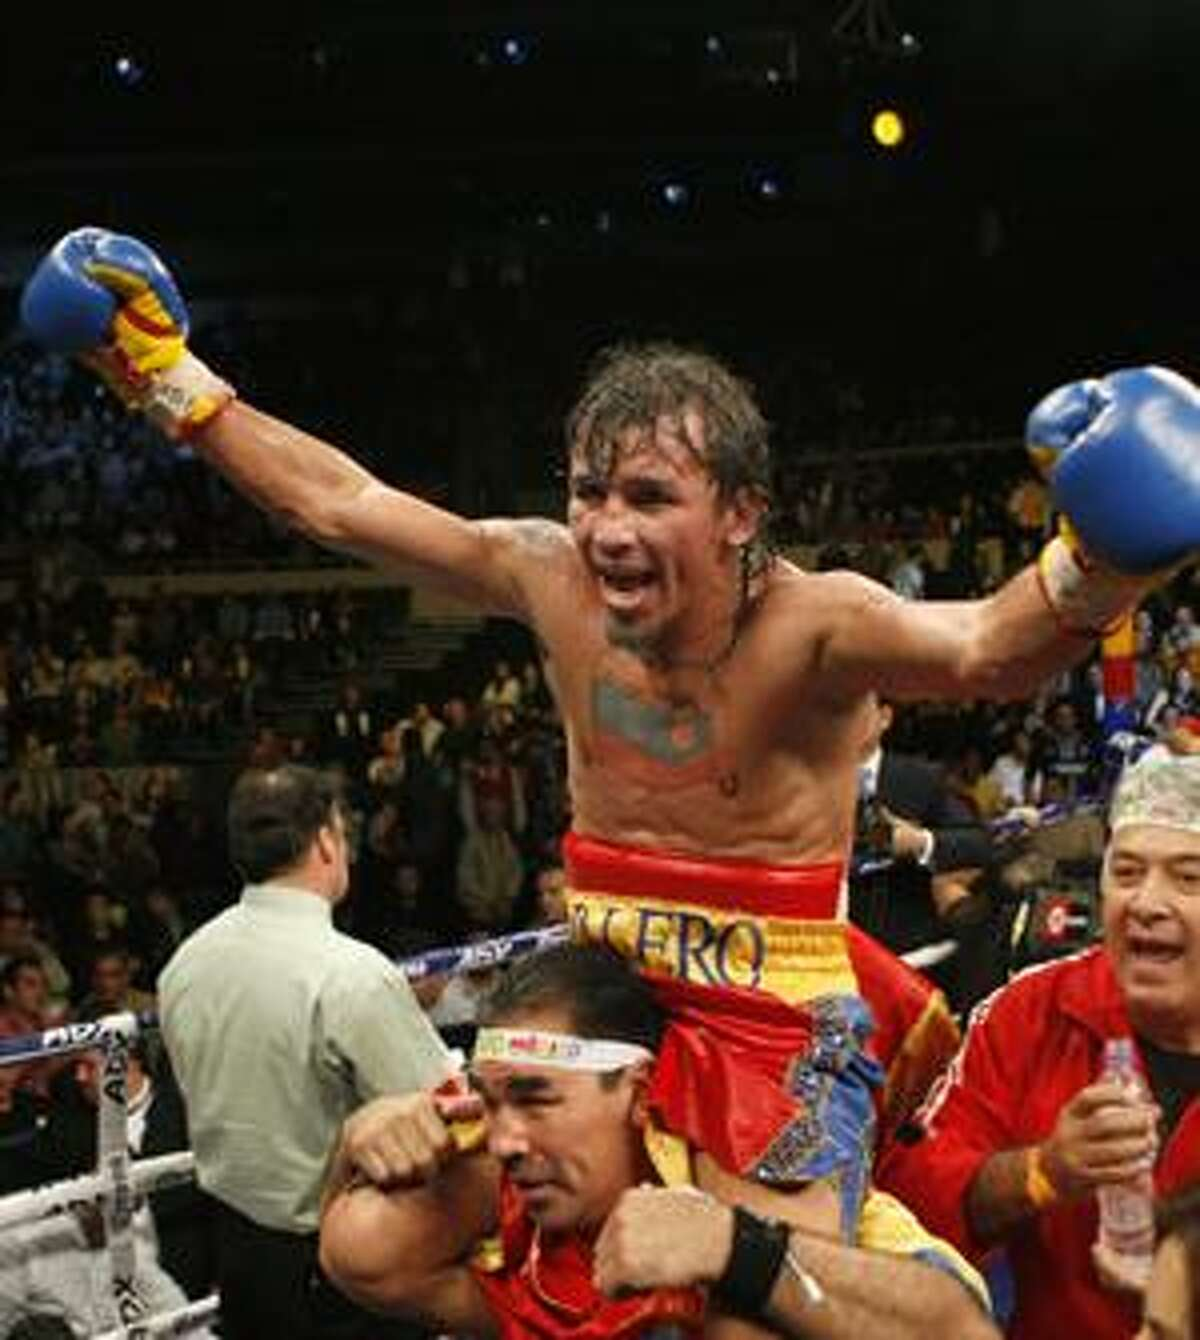 In this photo taken Feb. 6, 2010 Venezuela's Edwin Valero celebrates his victory over Mexico's Antonio DeMarco at a WBC lightweight title fight in Monterrey, Mexico. Valero committed suicide in his jail cell on Monday, April 19, 2010, in Valencia, Venezuela, just hours after he was arrested in his wife's killing, police said. (AP Photo/Eduardo Verdugo)